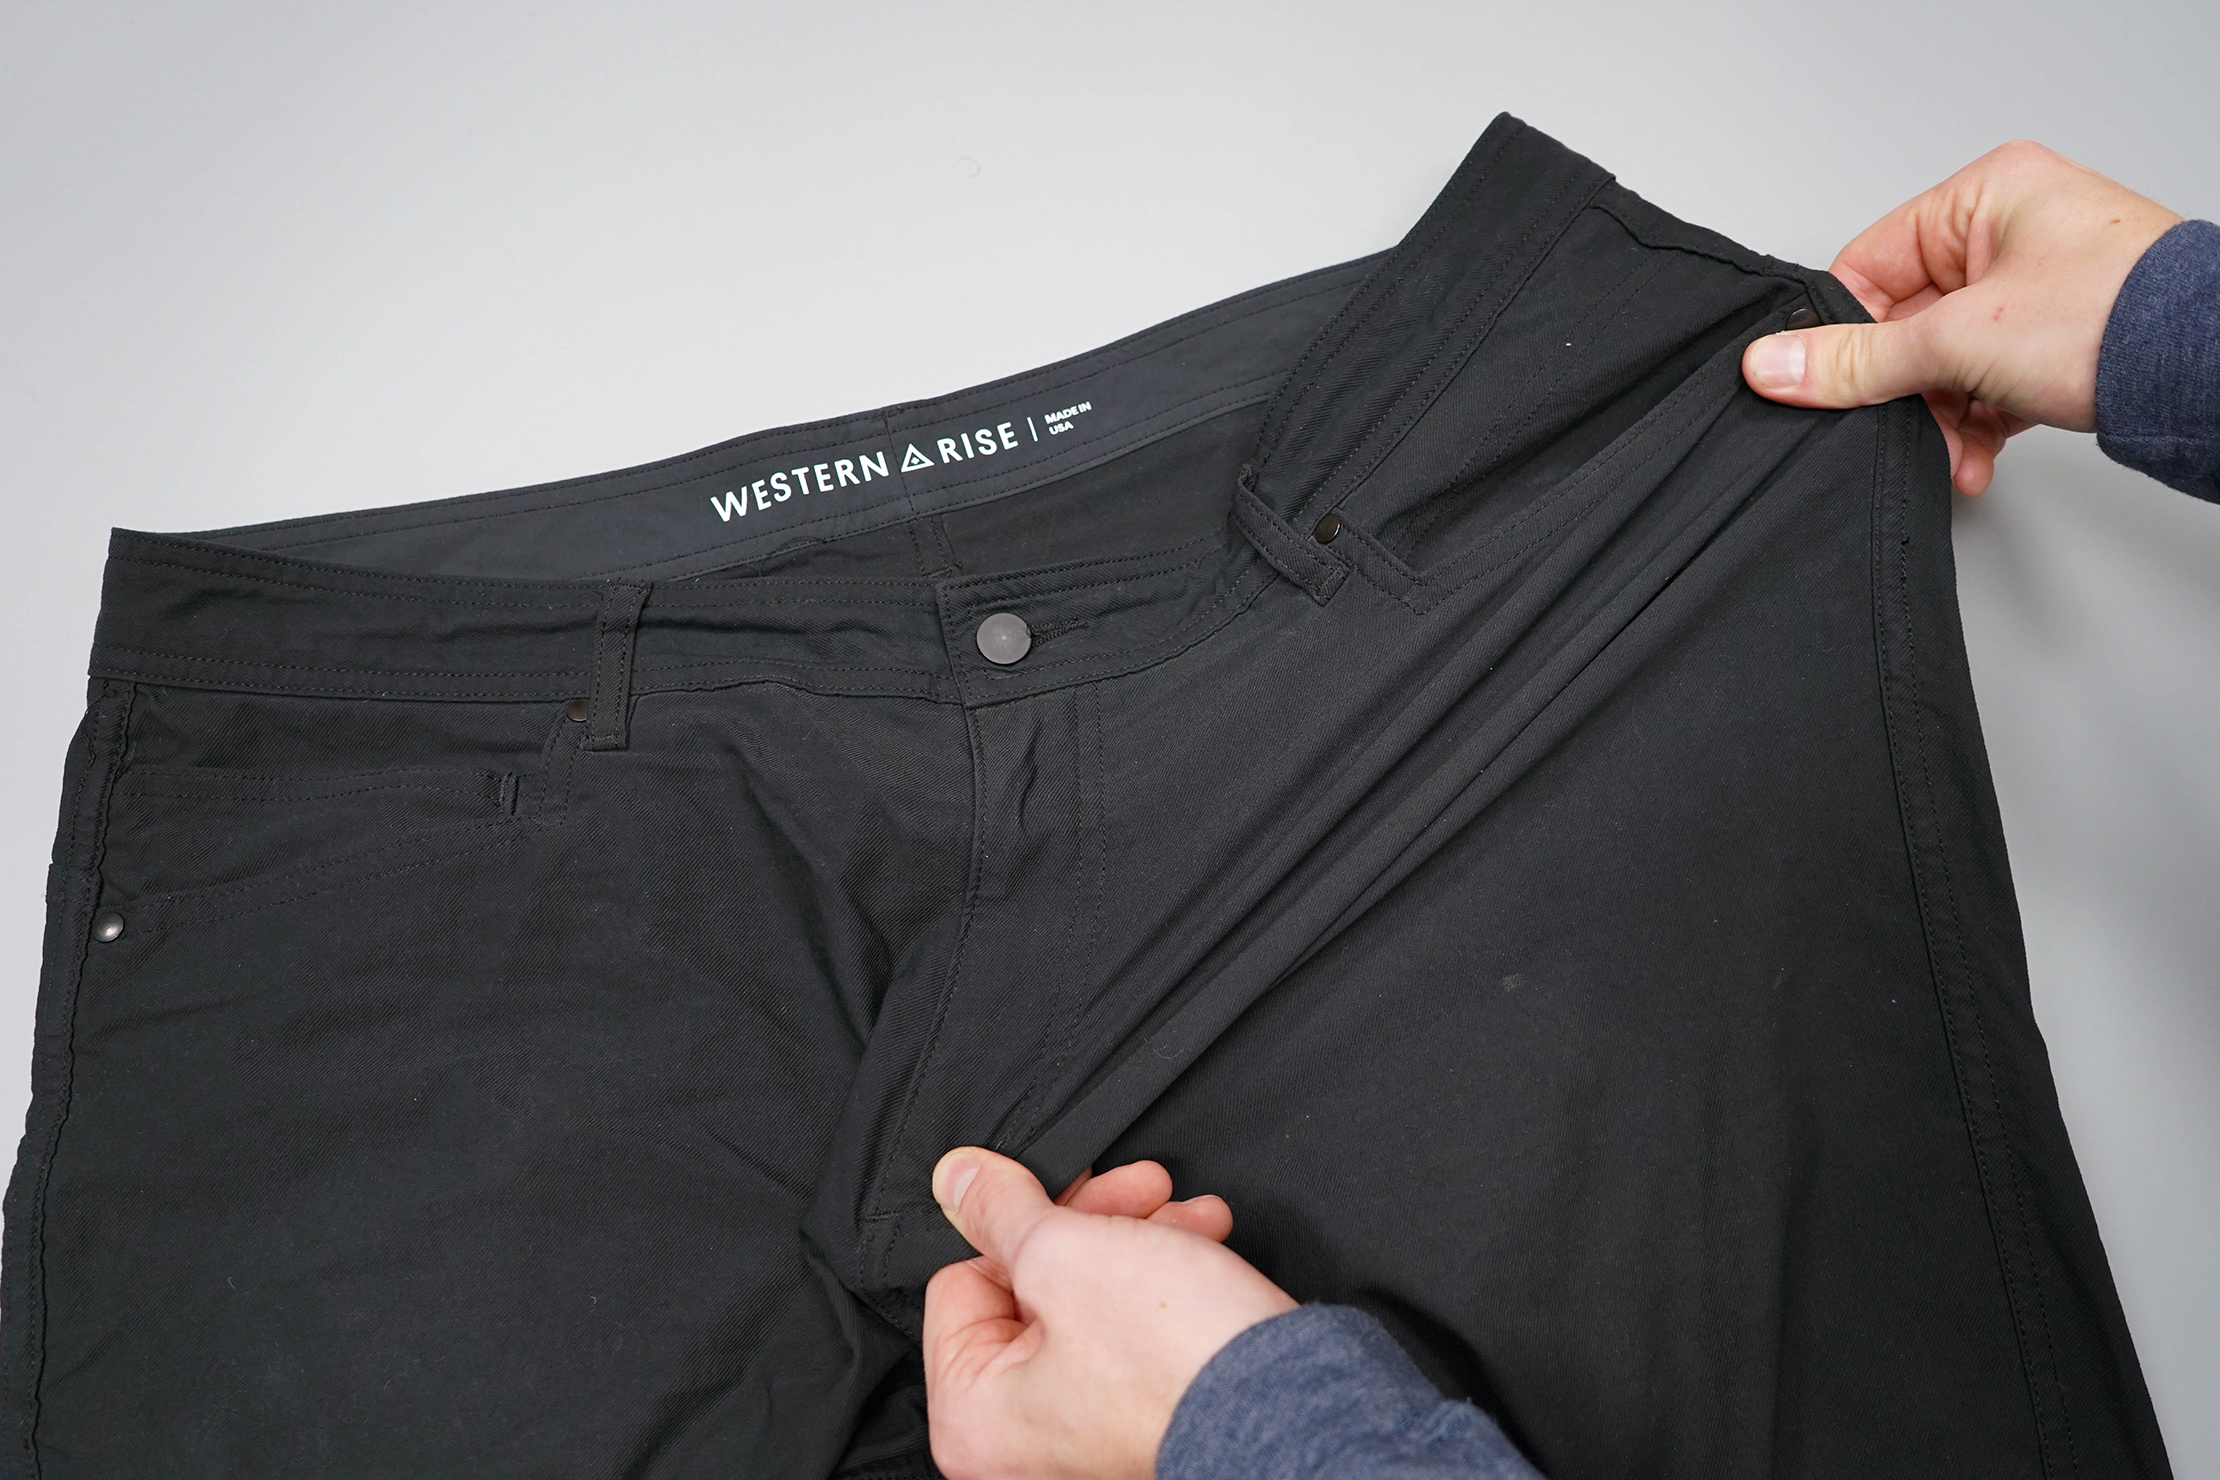 Western Rise Evolution Pant Stretch